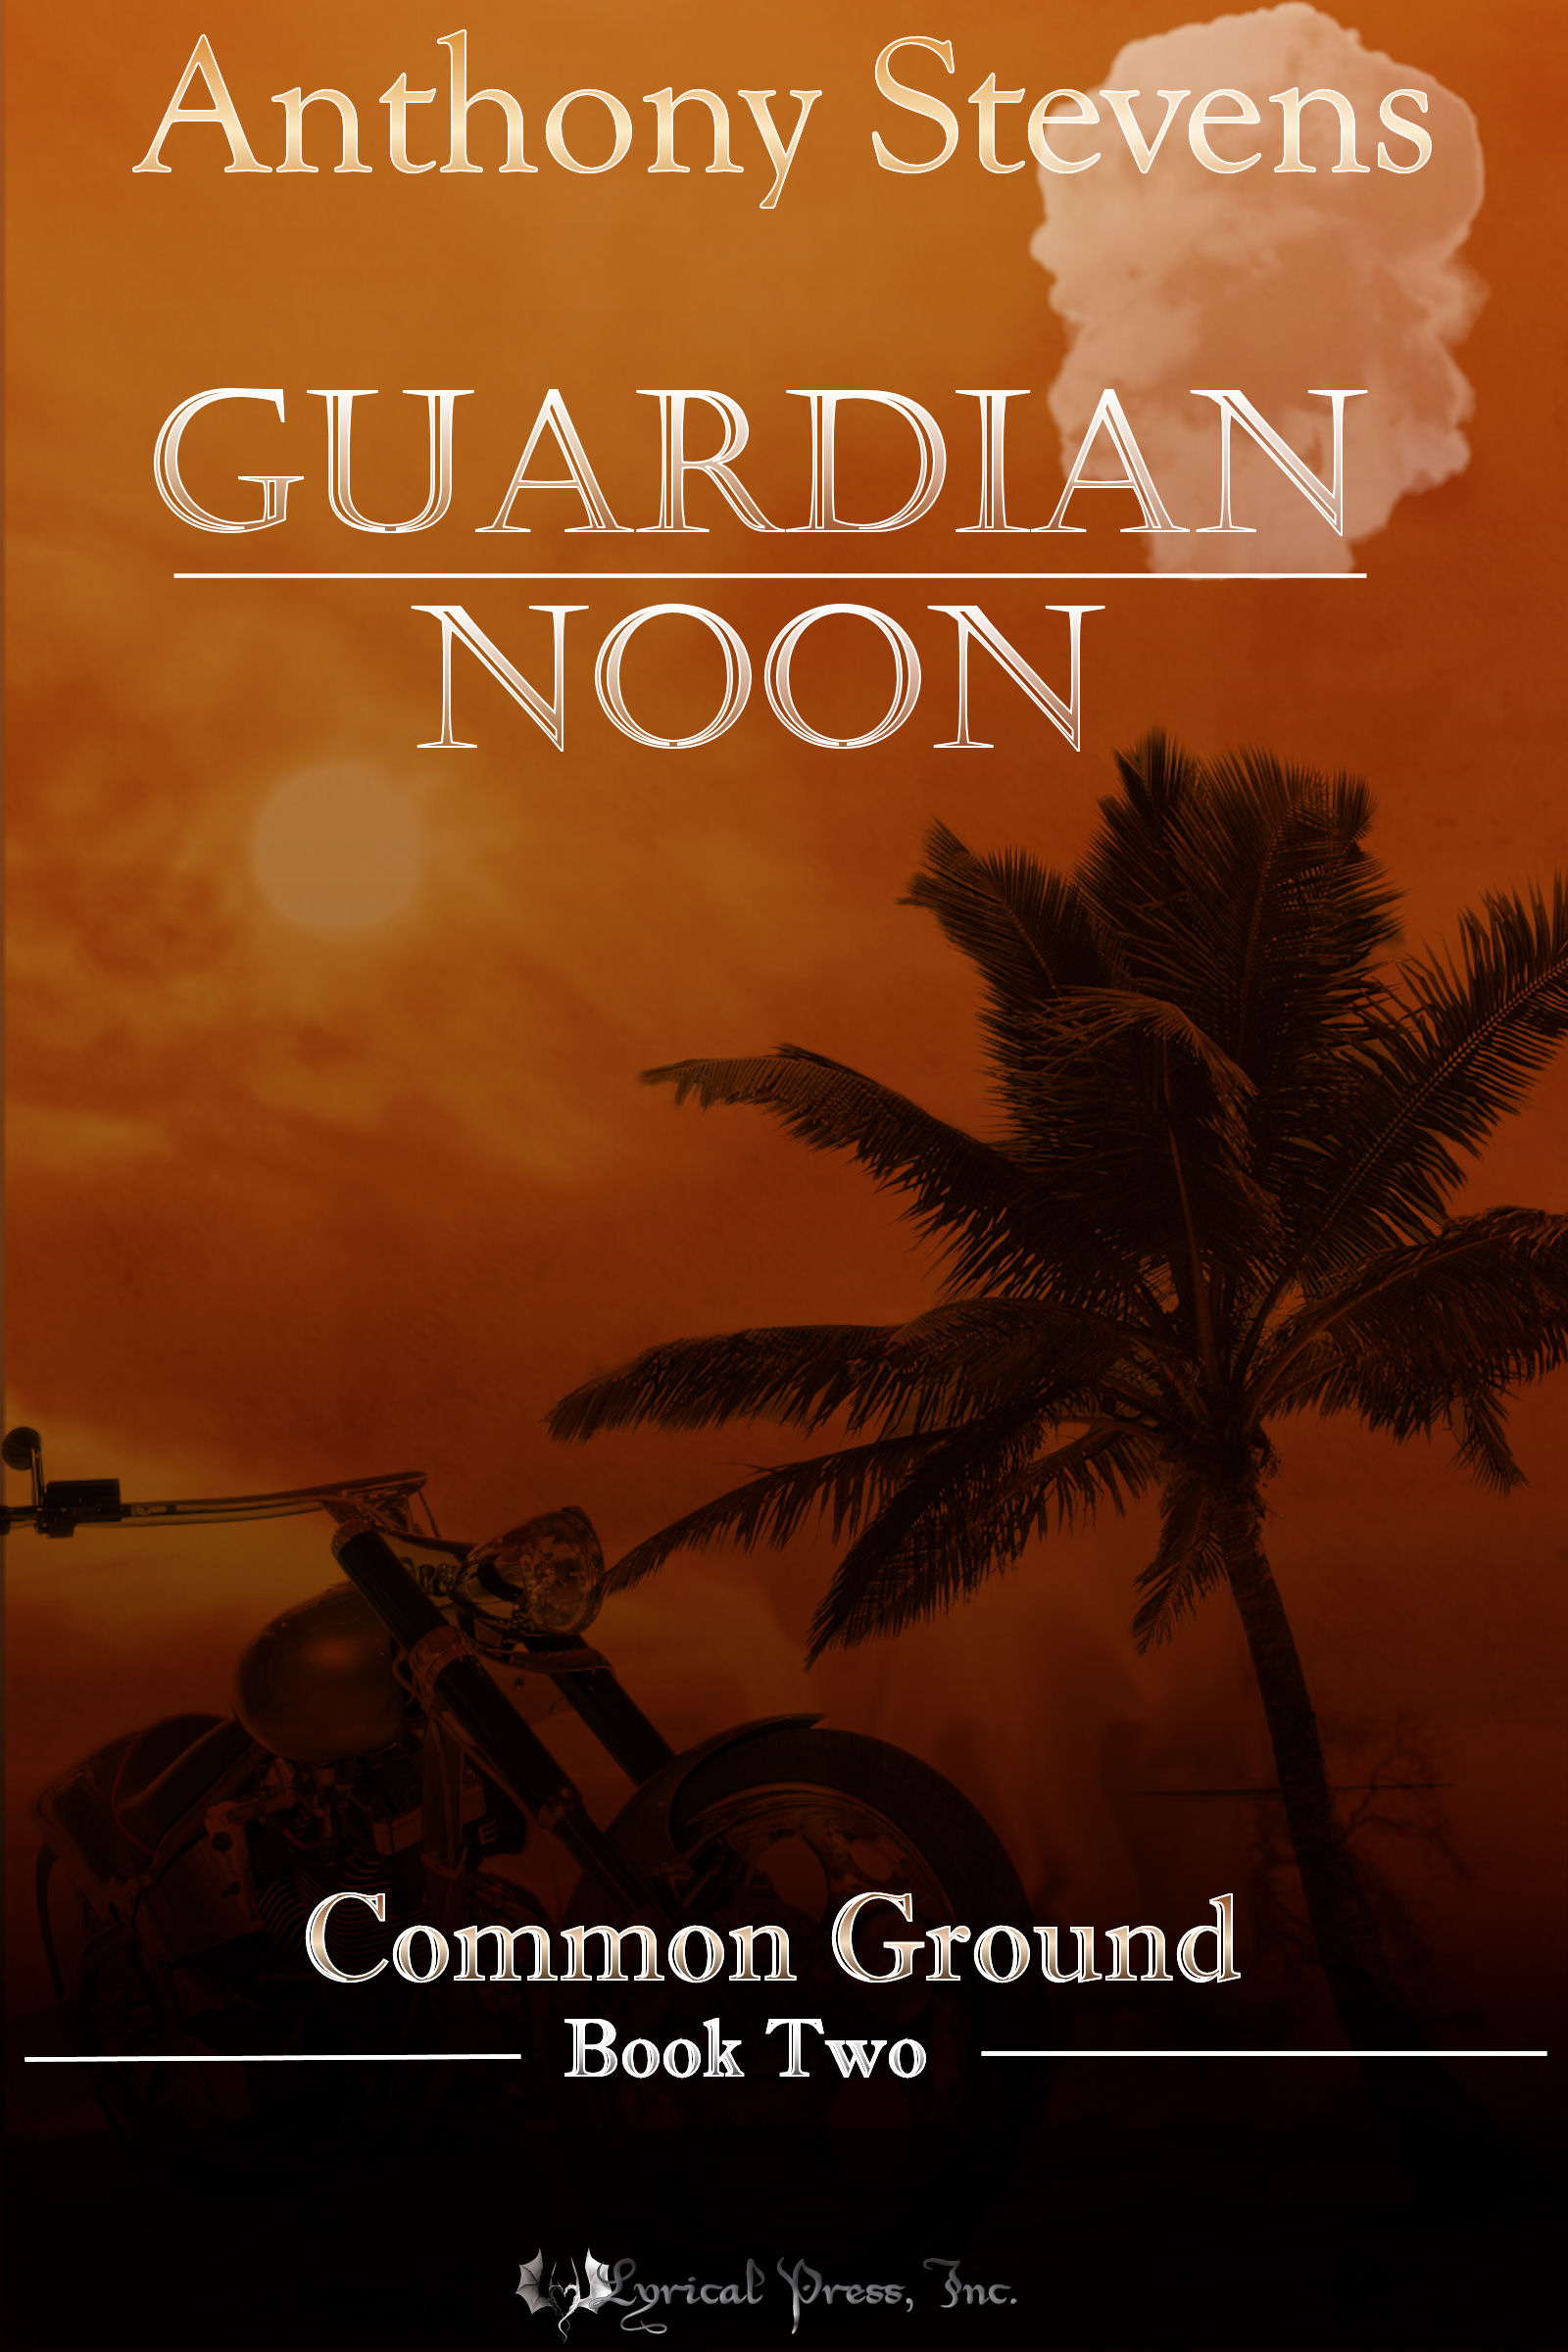 GuardianNoon